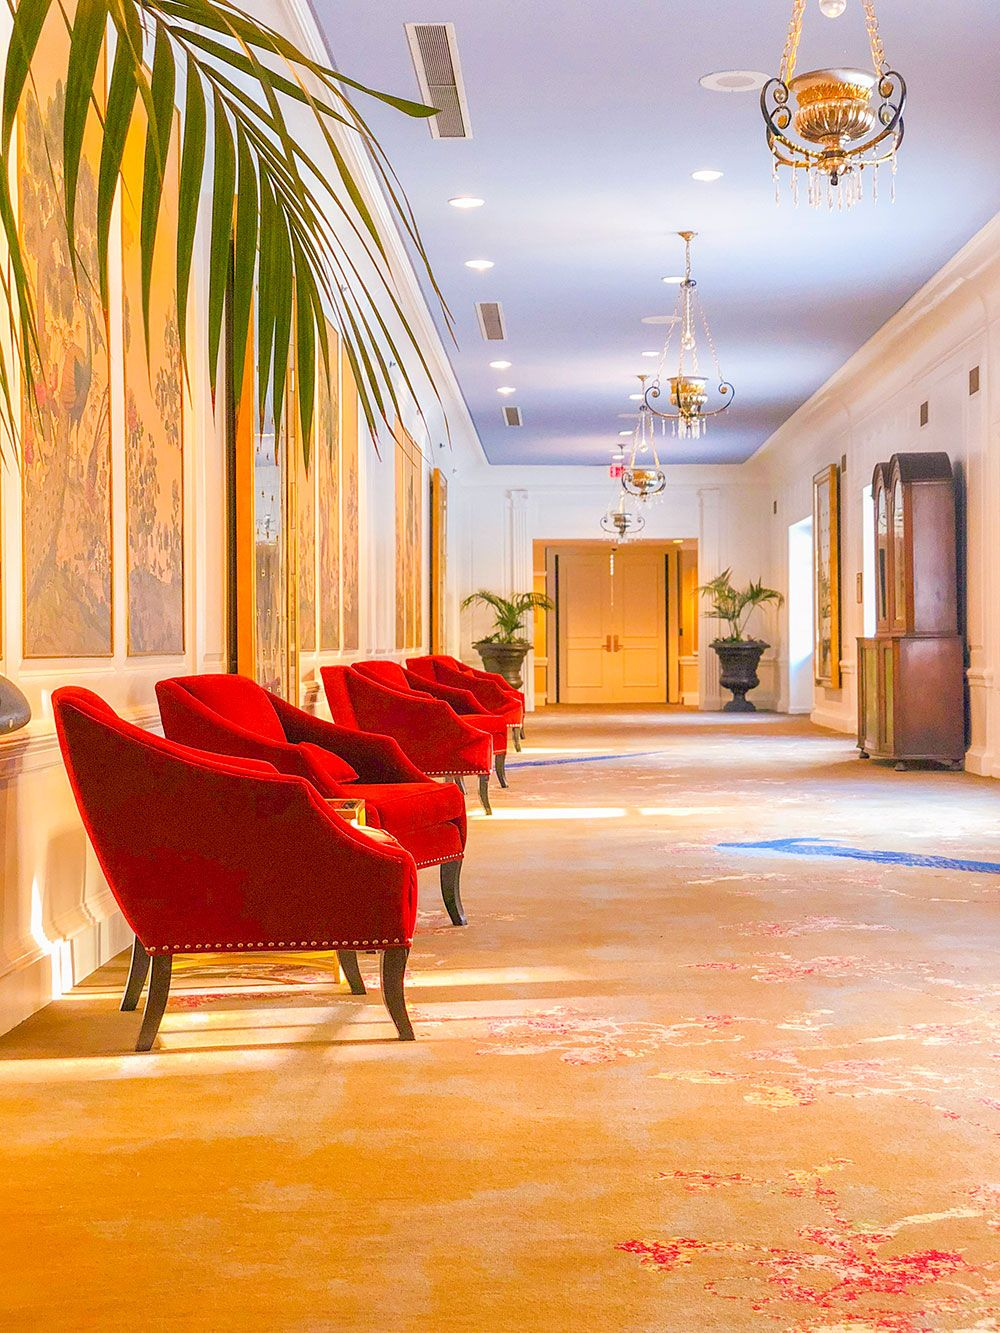 Where To Stay In Roanoke, VA? Hotels & Attractions ...